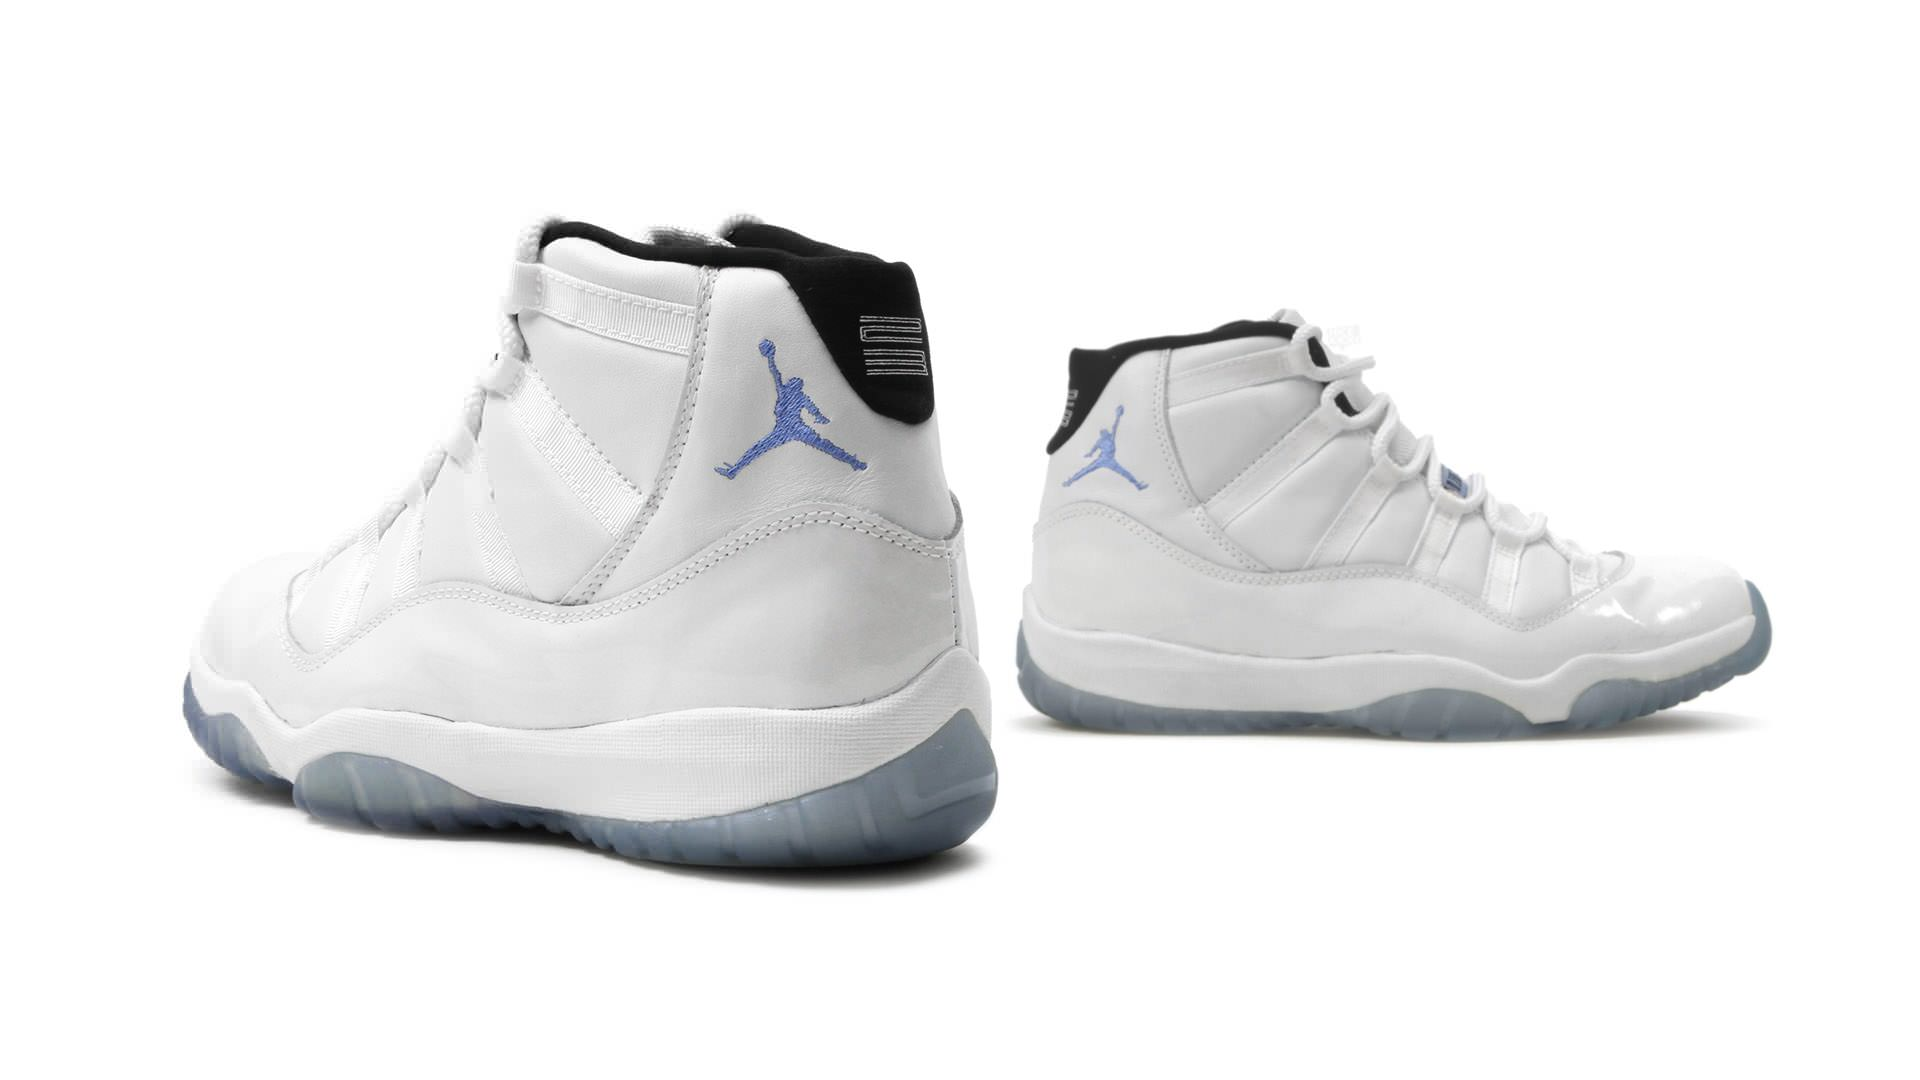 NIKE AIR JORDAN XI COLUMBIA WALLPAPER 1920 1920x1080